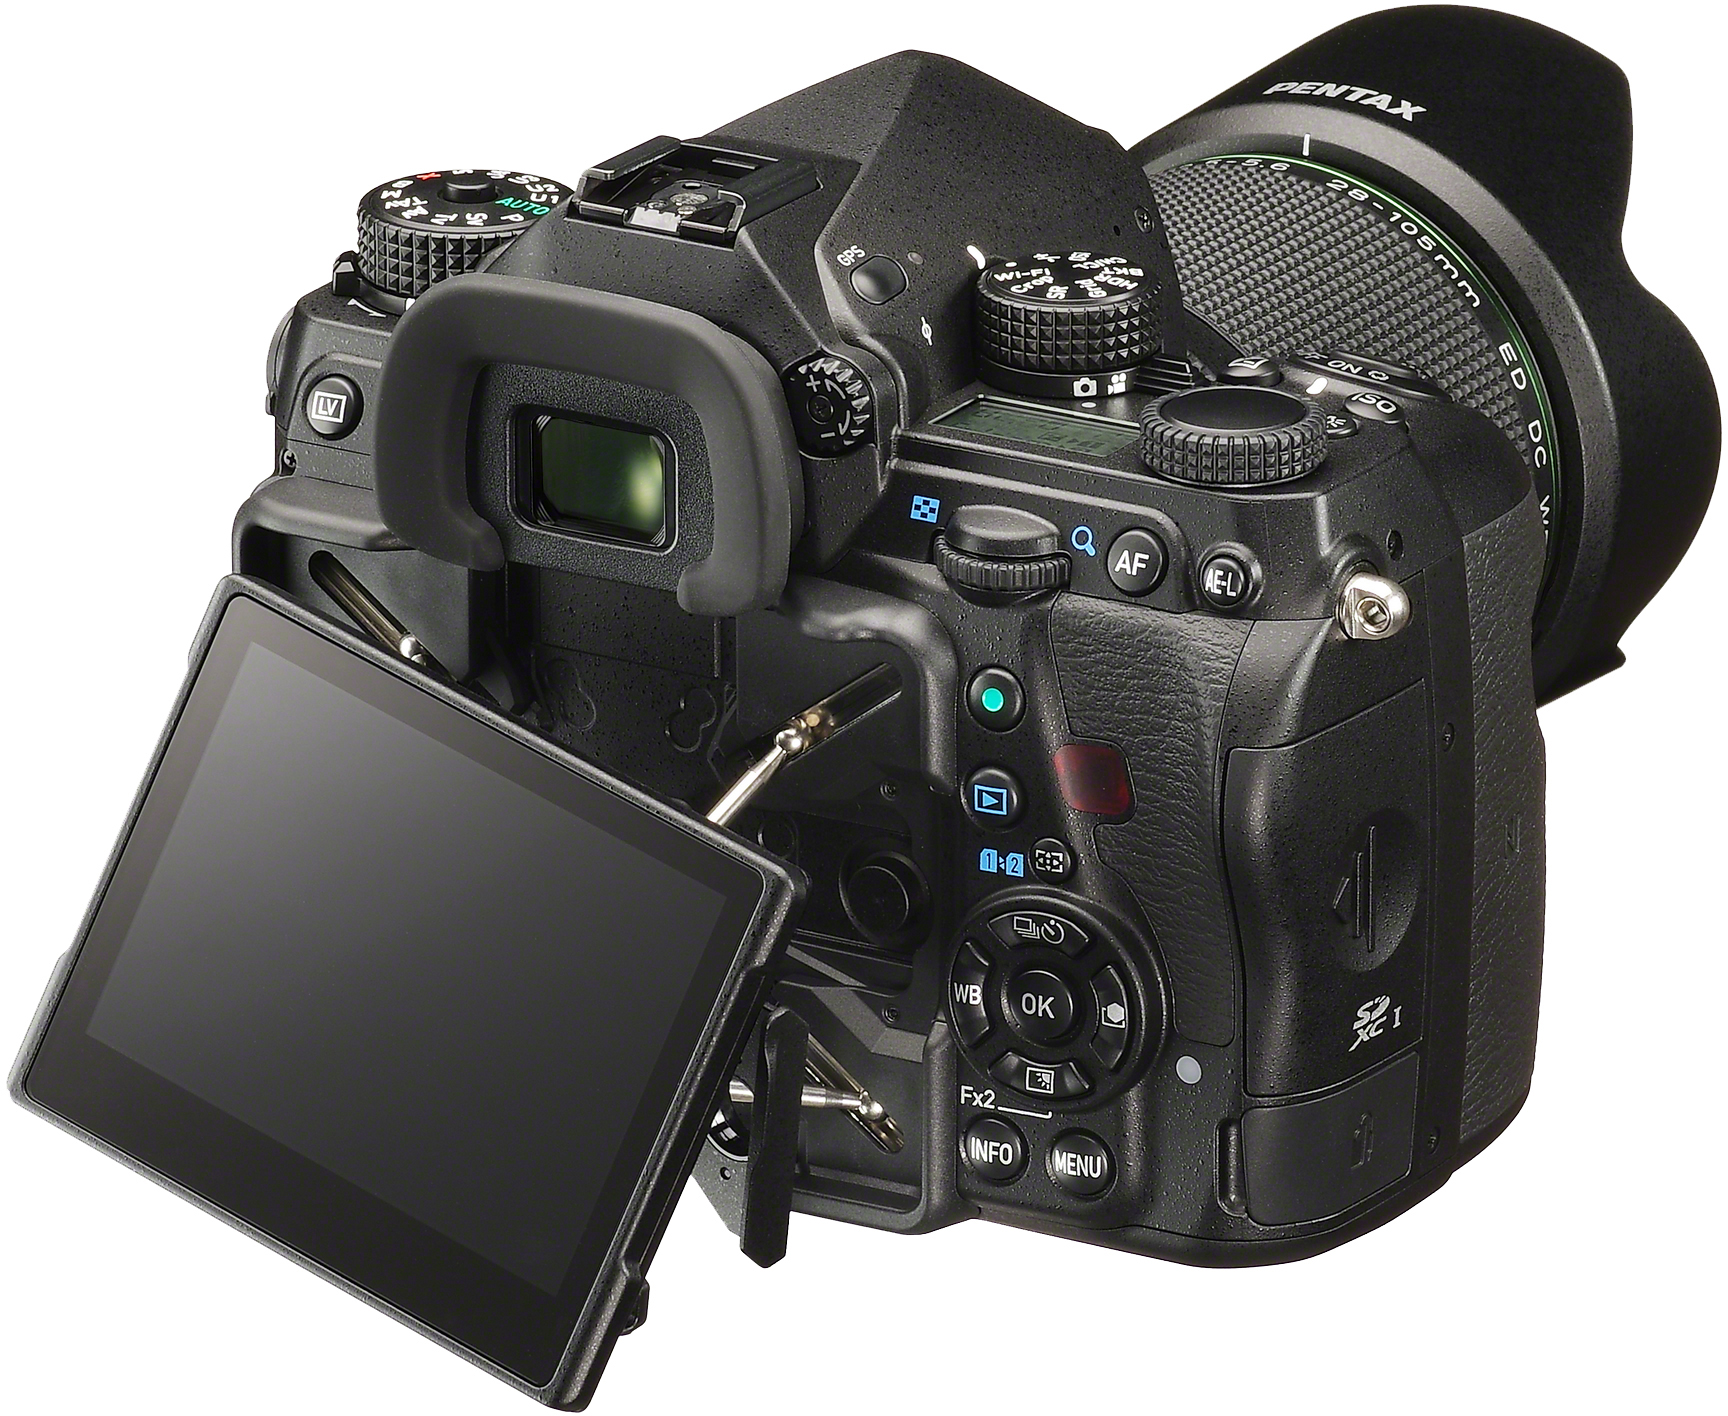 Unveiled: Pentax Makes its First Foray into Full-Frame Cameras ...